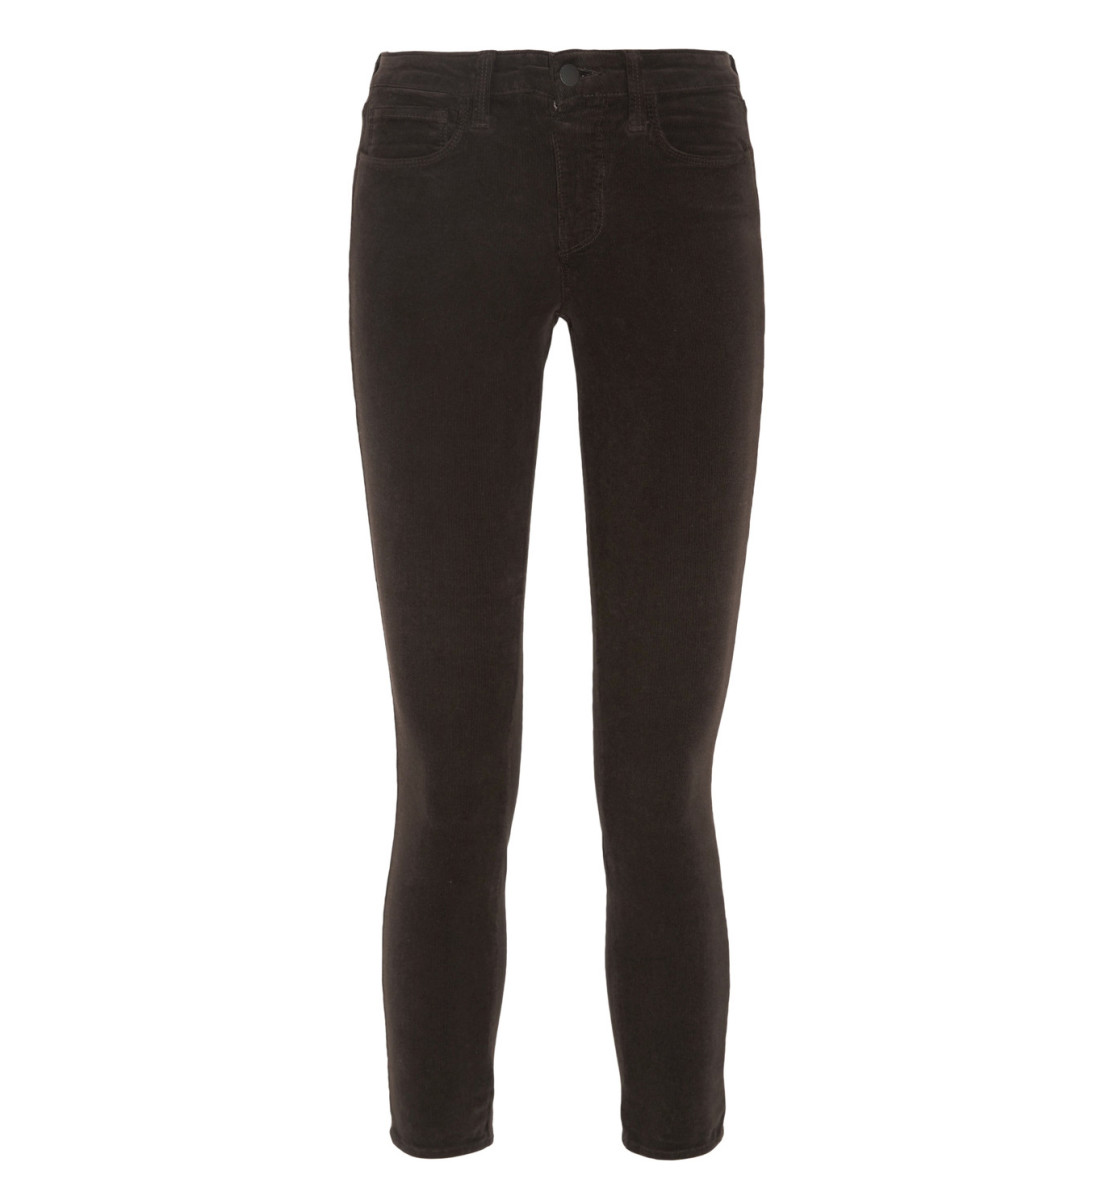 L Agence Margot Cropped Corduroy Skinny Pants Review - Fashionista b0a703f027461